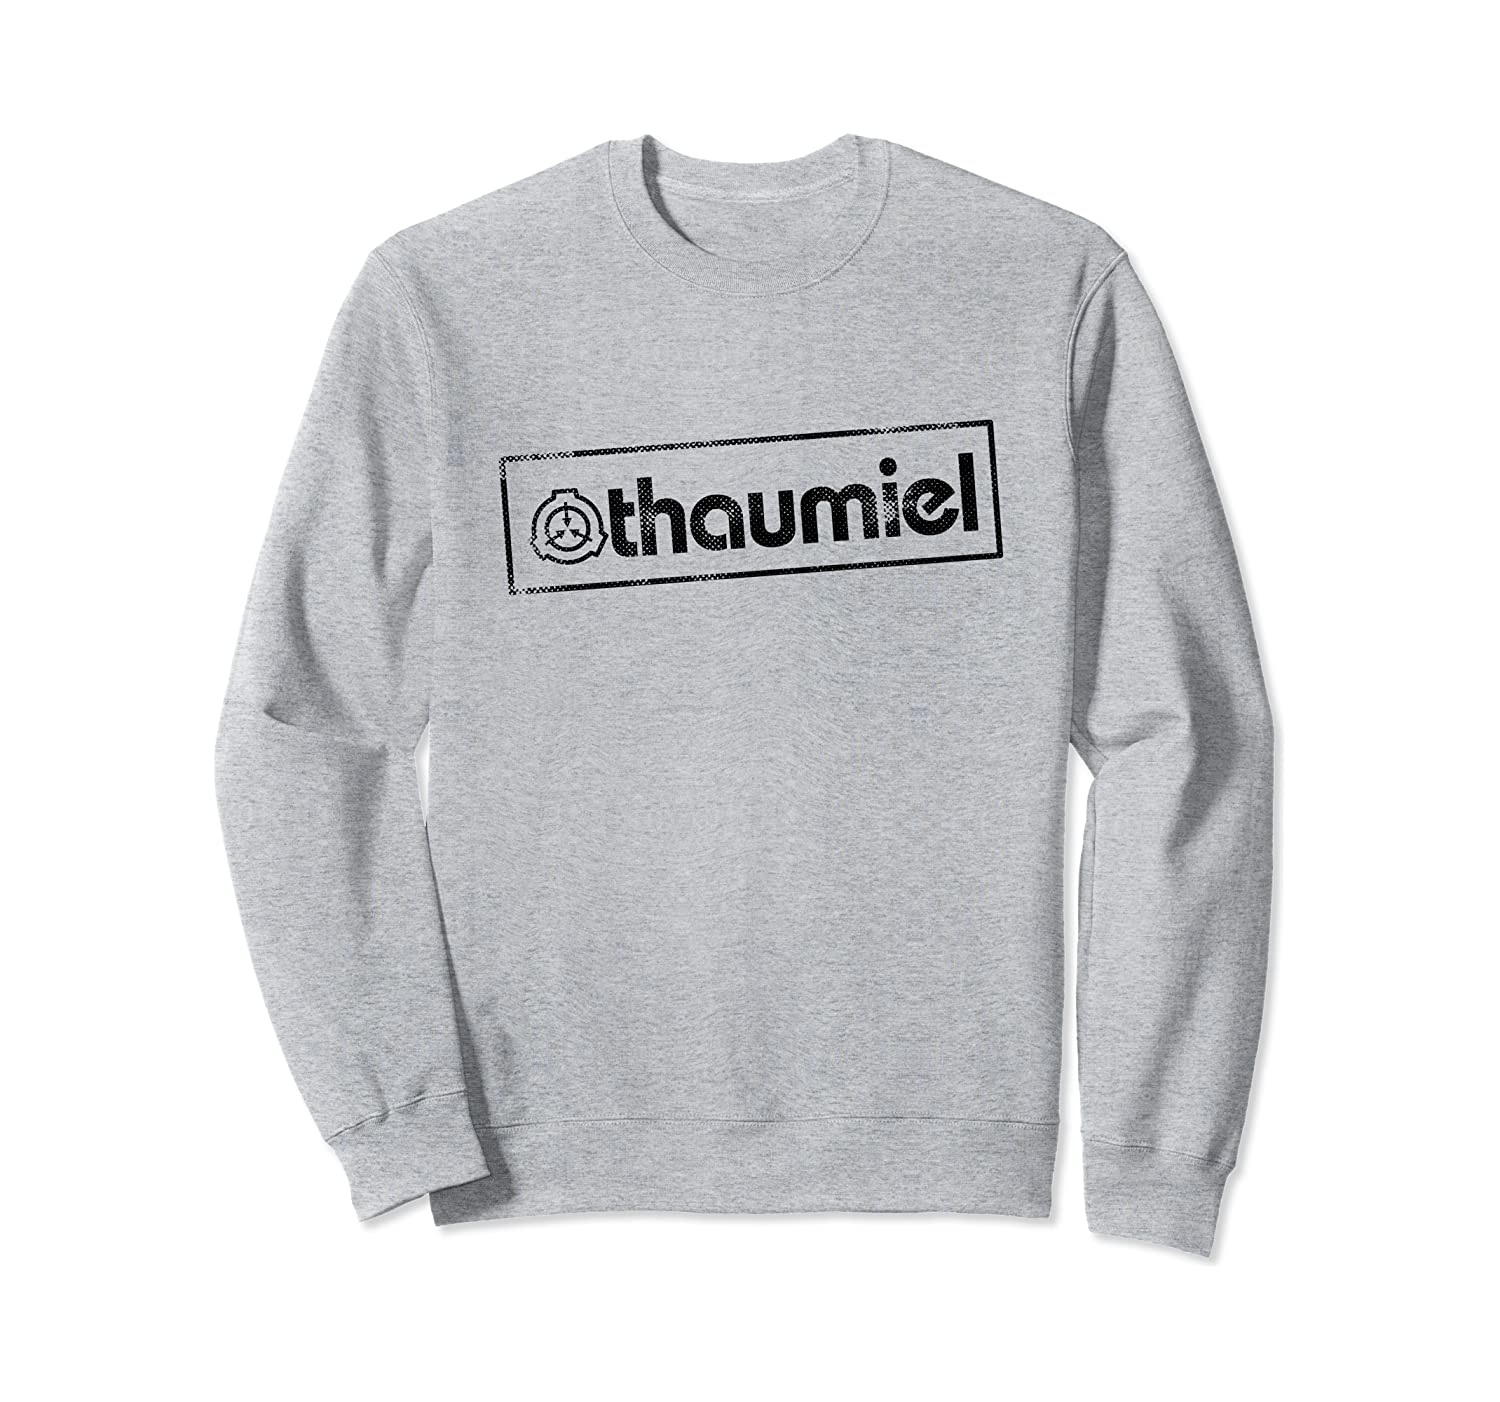 Scp Foundation Object Class Thaumiel Sweatshirt Clothing Amazon Com There's only three thaumiel cla. scp foundation object class thaumiel